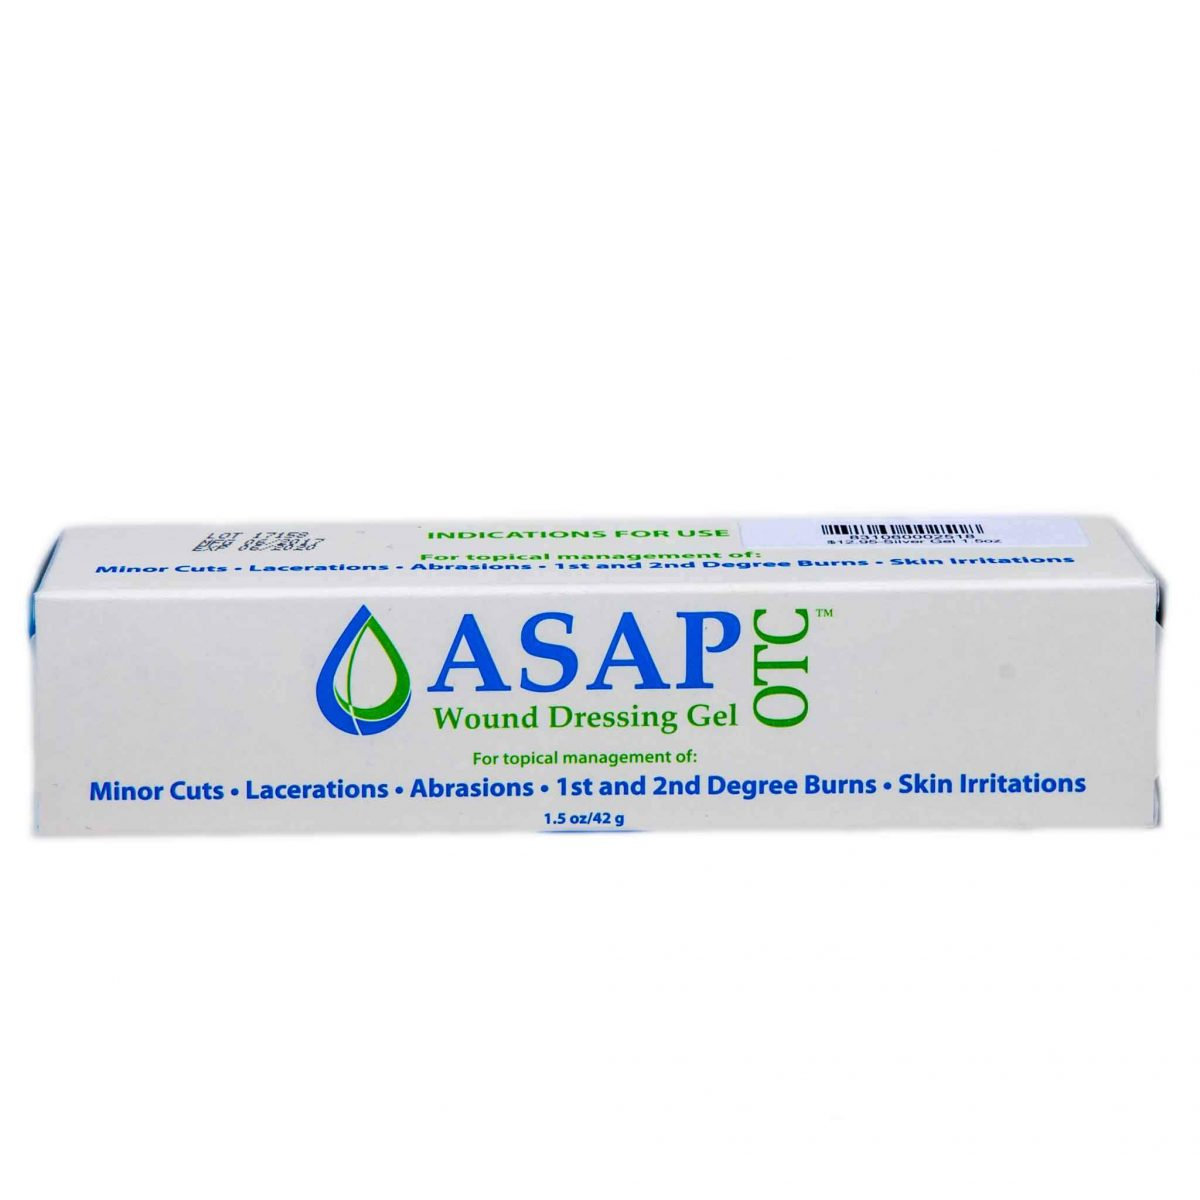 ASAP OTC Nano-Silver Wound Dressing Gel 1.5oz